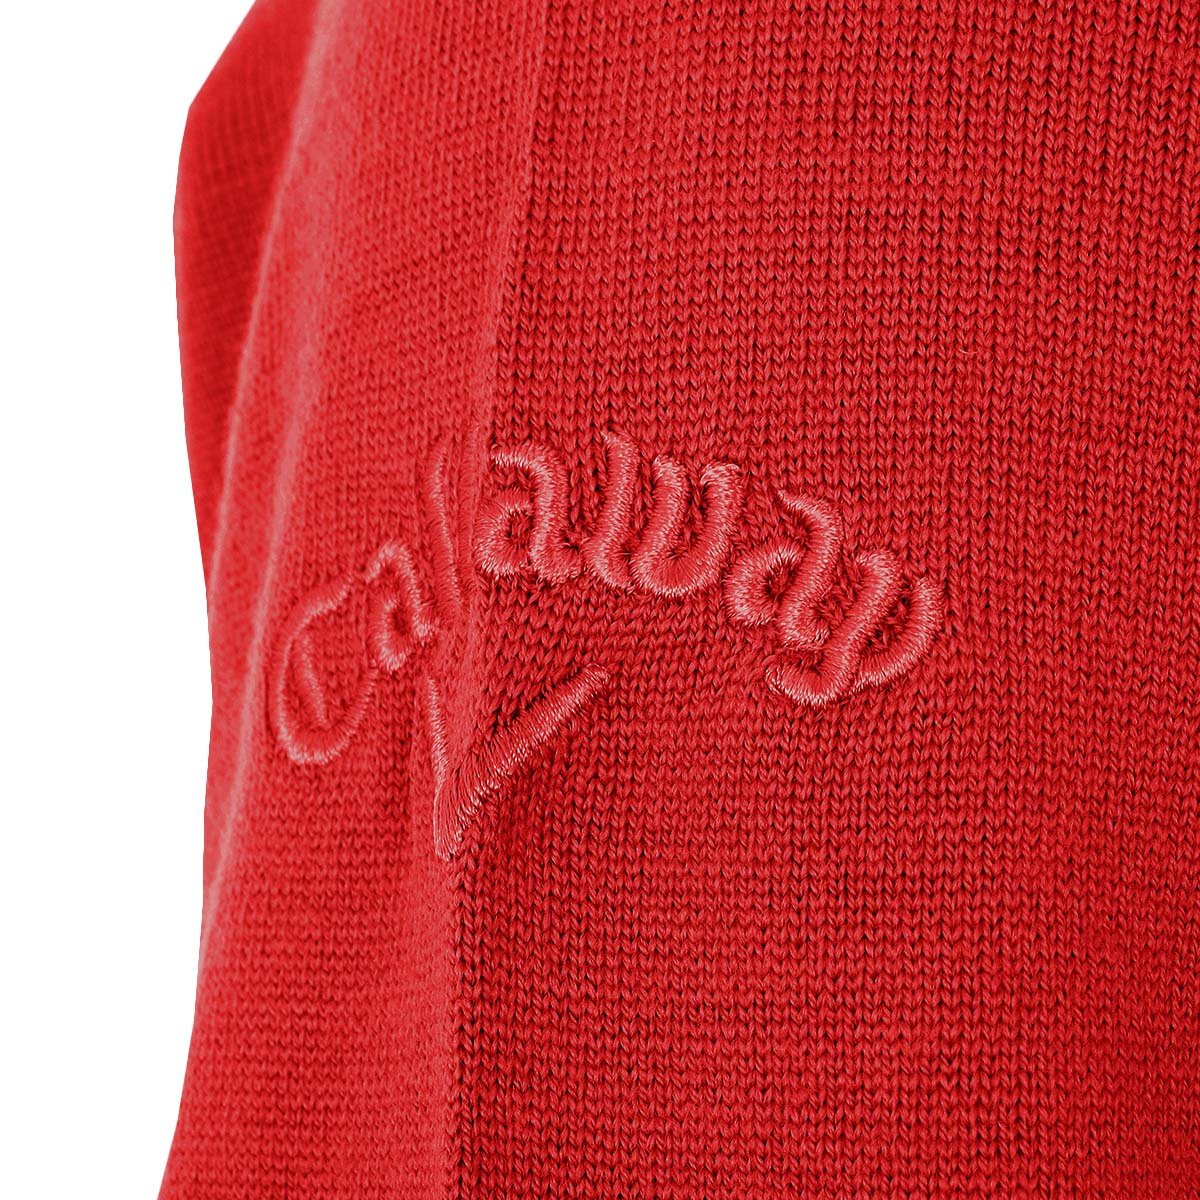 Callaway-Golf-Mens-Merino-1-4-Zip-Sweater-Wool-Pullover-Therm-Jumper-60-OFF-RRP thumbnail 31